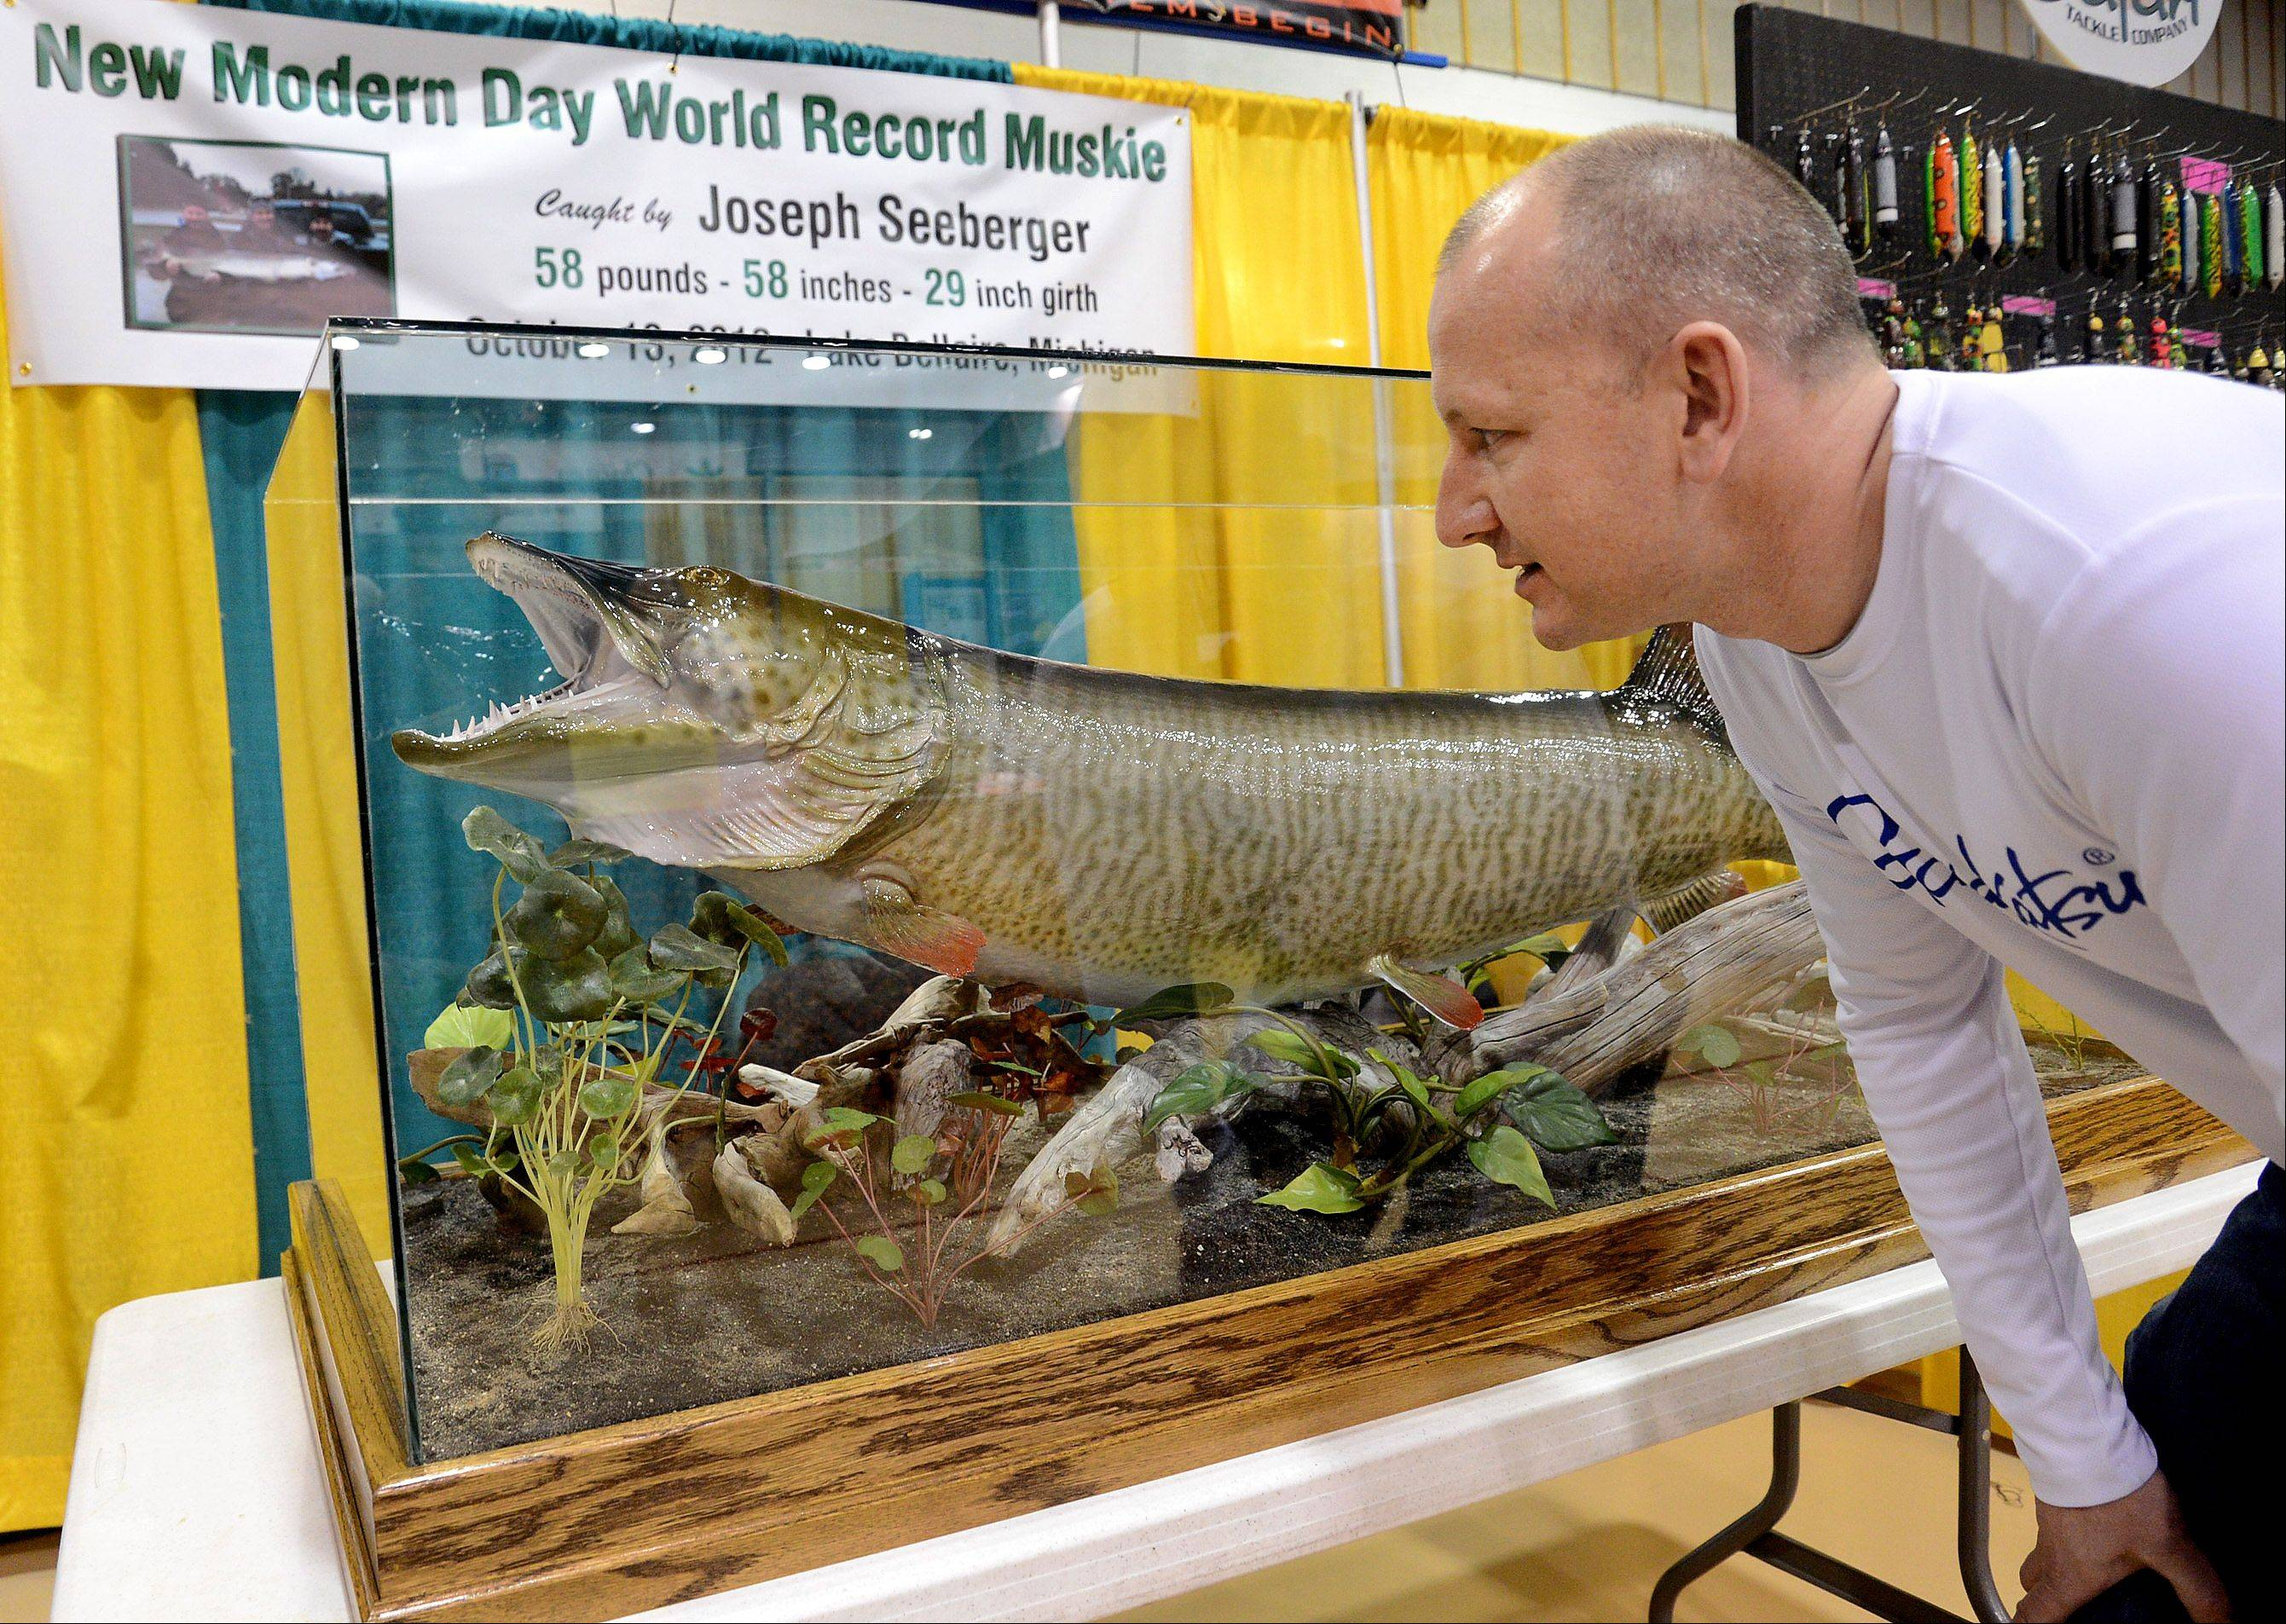 Joseph Seeberger of Portage, Mich., peers at his modern-day world record muskie, caught in 2012 with a live minnow and an 8-lb. test line. His muskie, which he caught while fishing for bass in Lake Bellaire, Mich., is on display at the Chicago Muskie Show at Harper College.